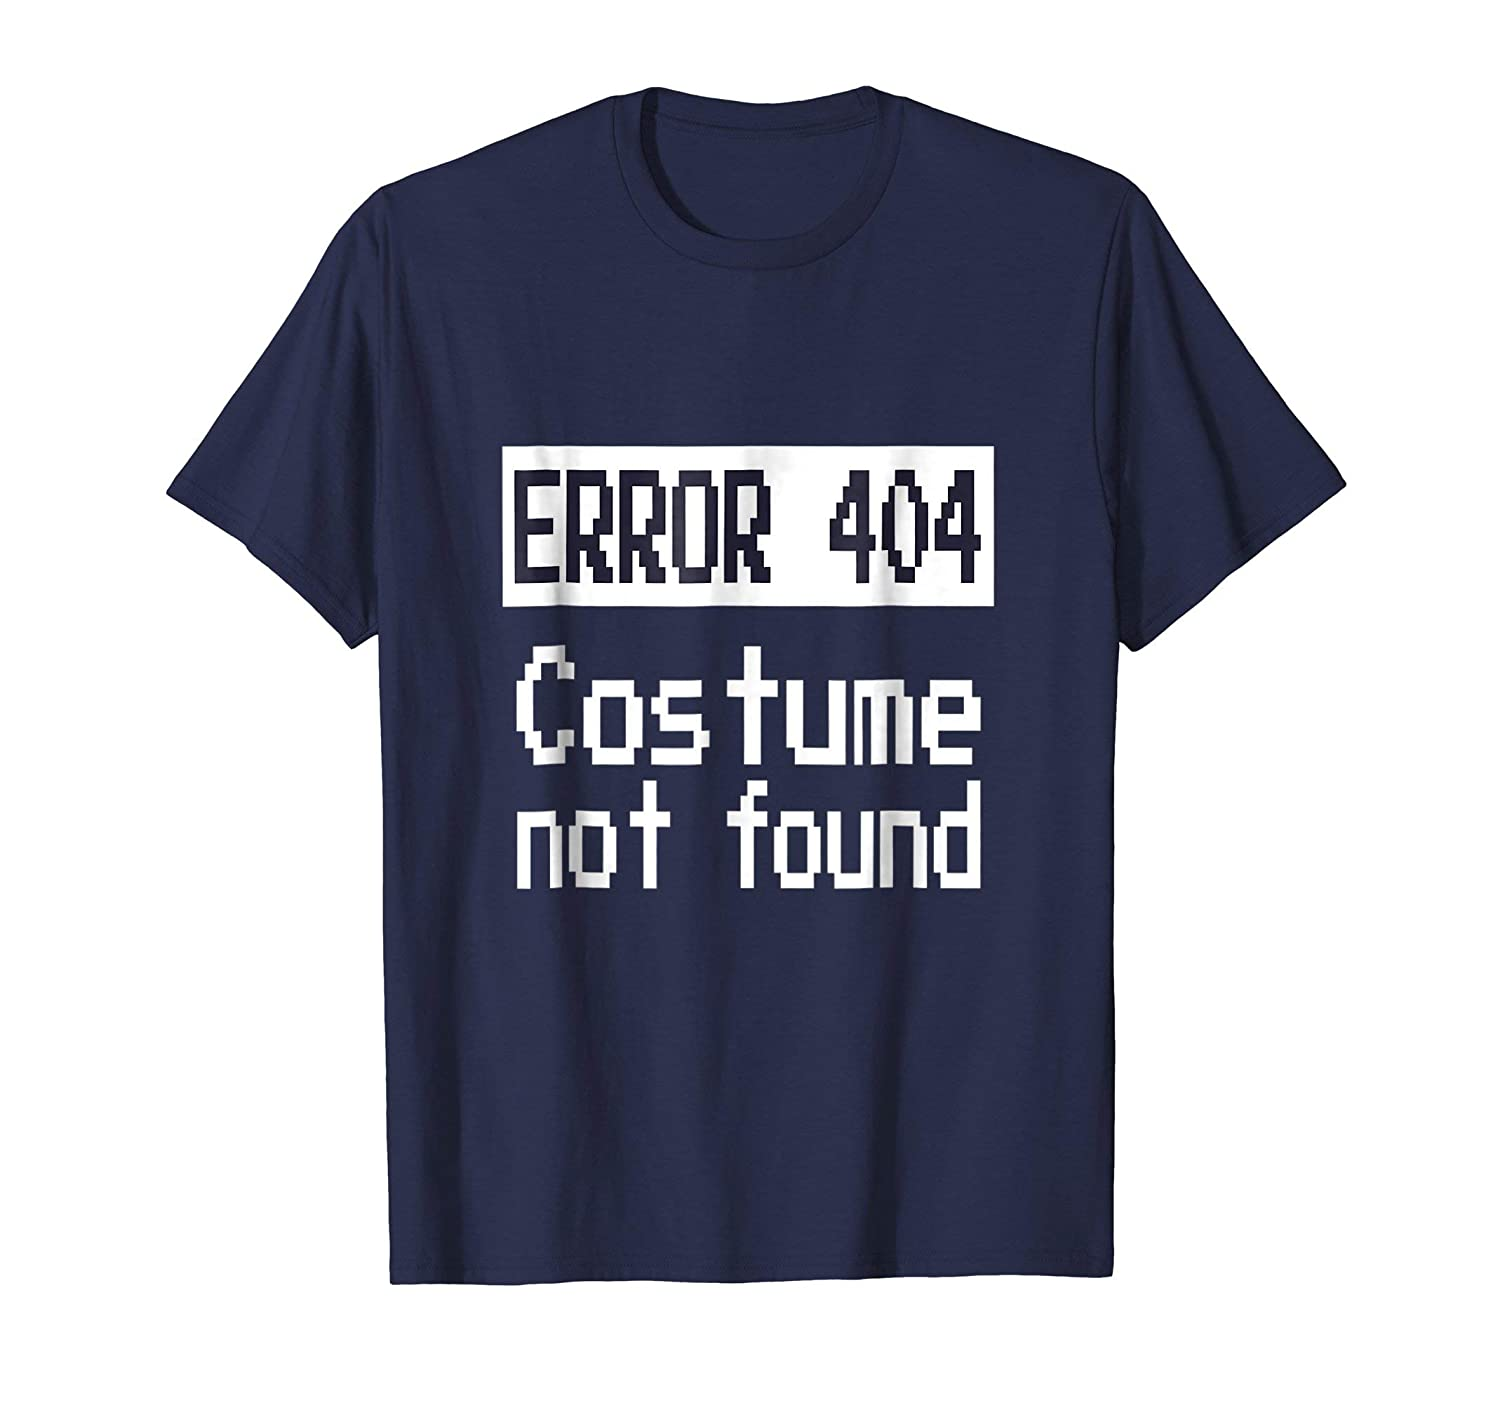 Real classic. Make getting ready for trick or treating easy.-Rose